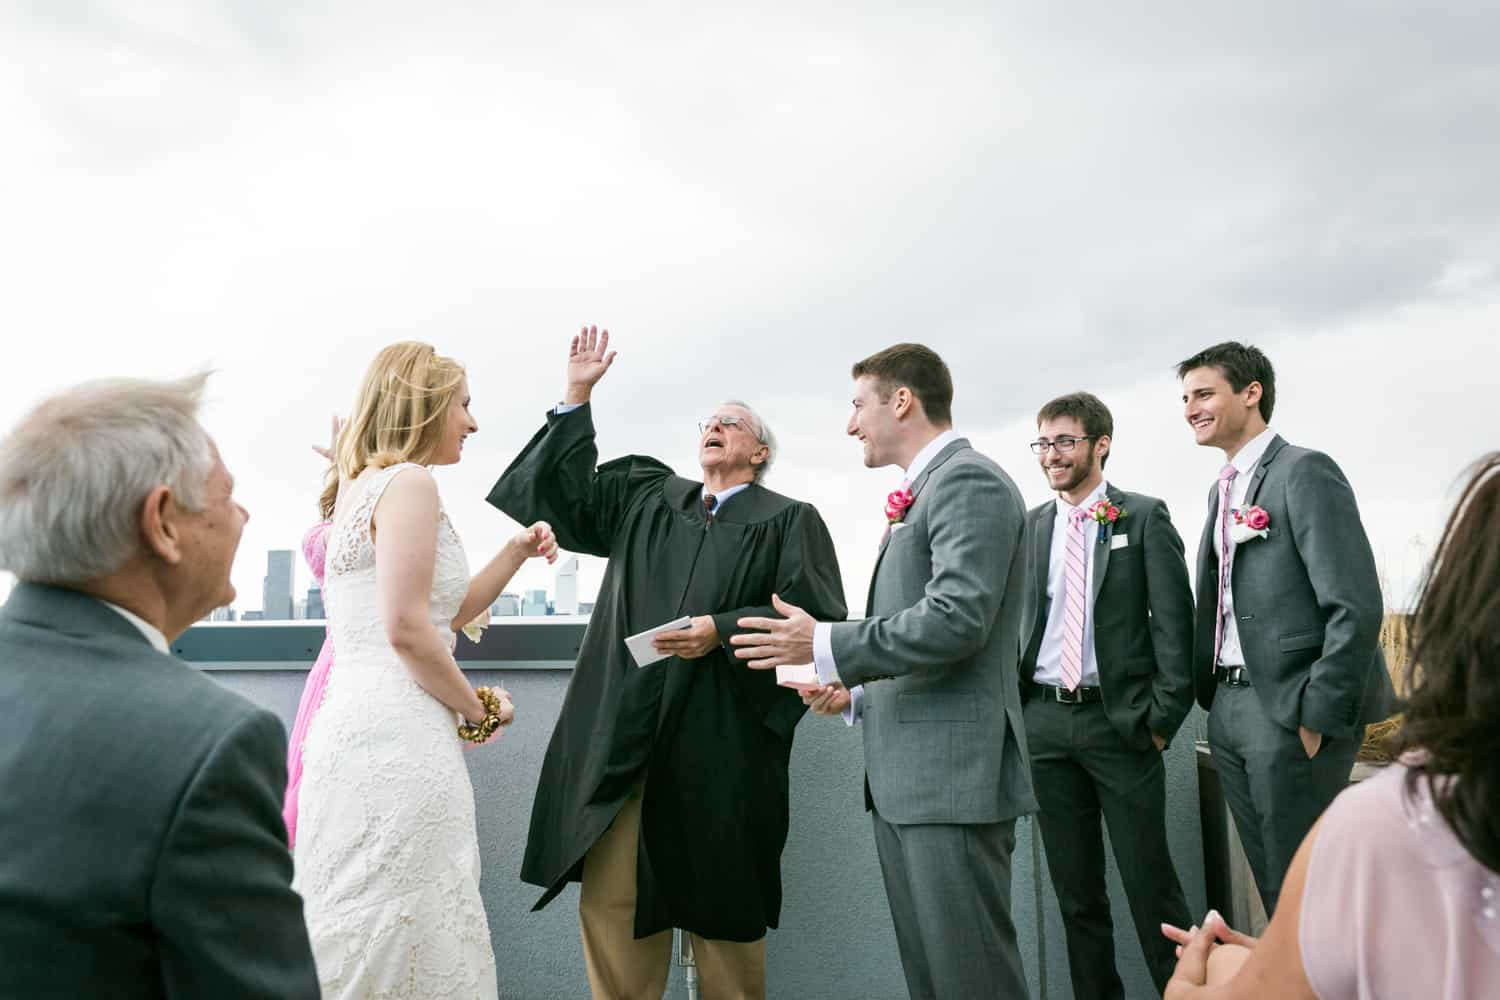 Officiant with hand in air during rooftop wedding ceremony